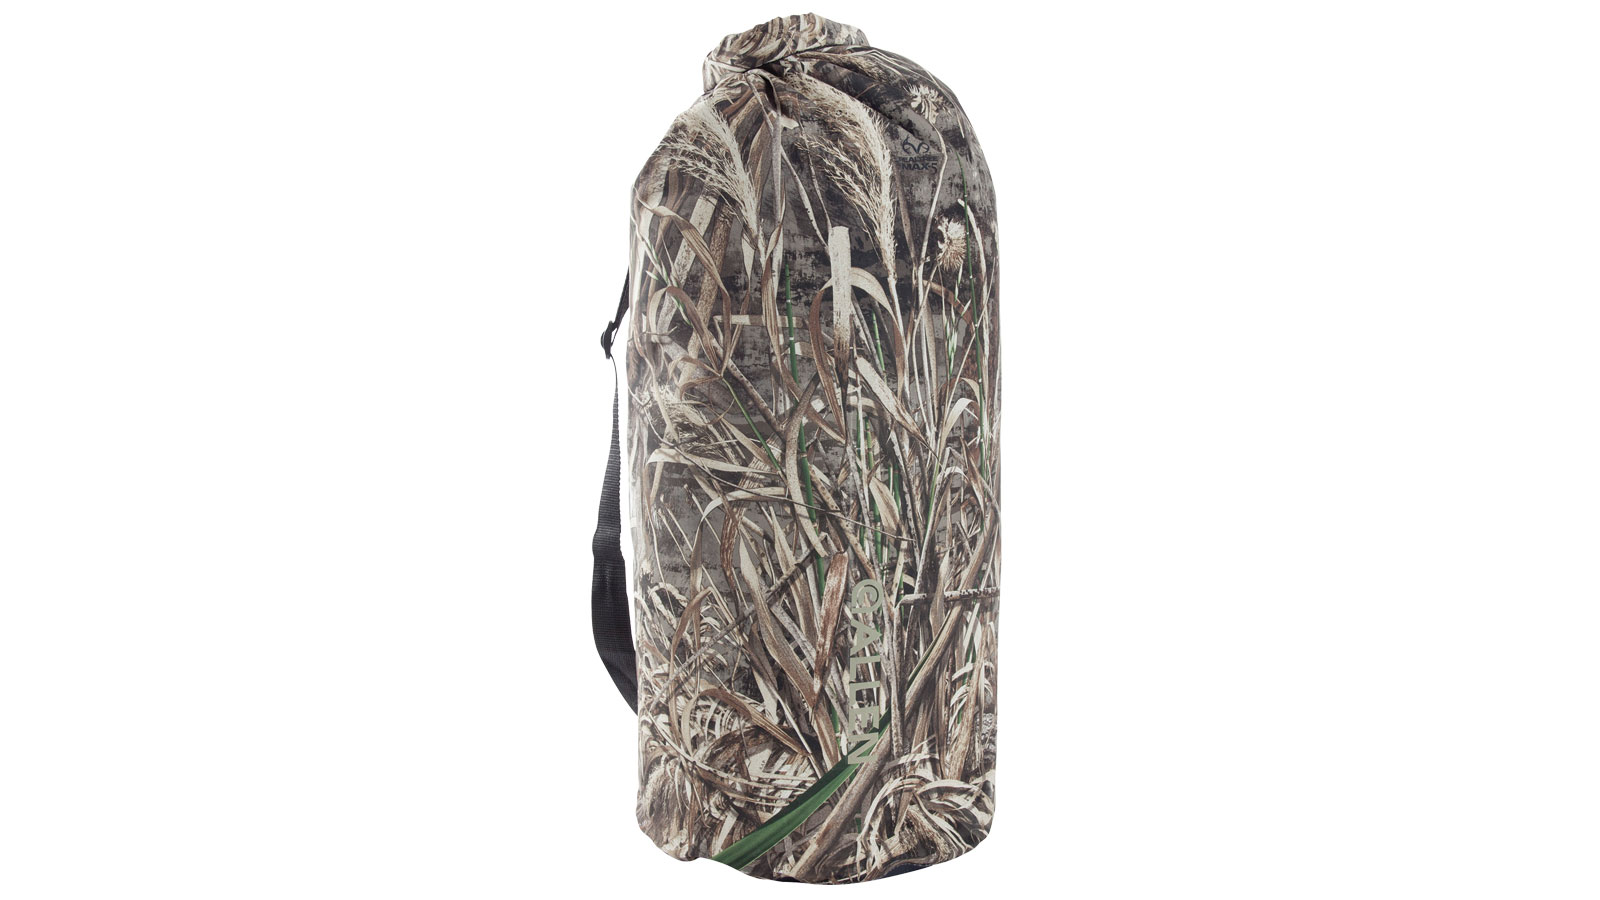 Allen 1725 High-N-Dry Roll-Top Bag Transport Bag  Realtree Max-5